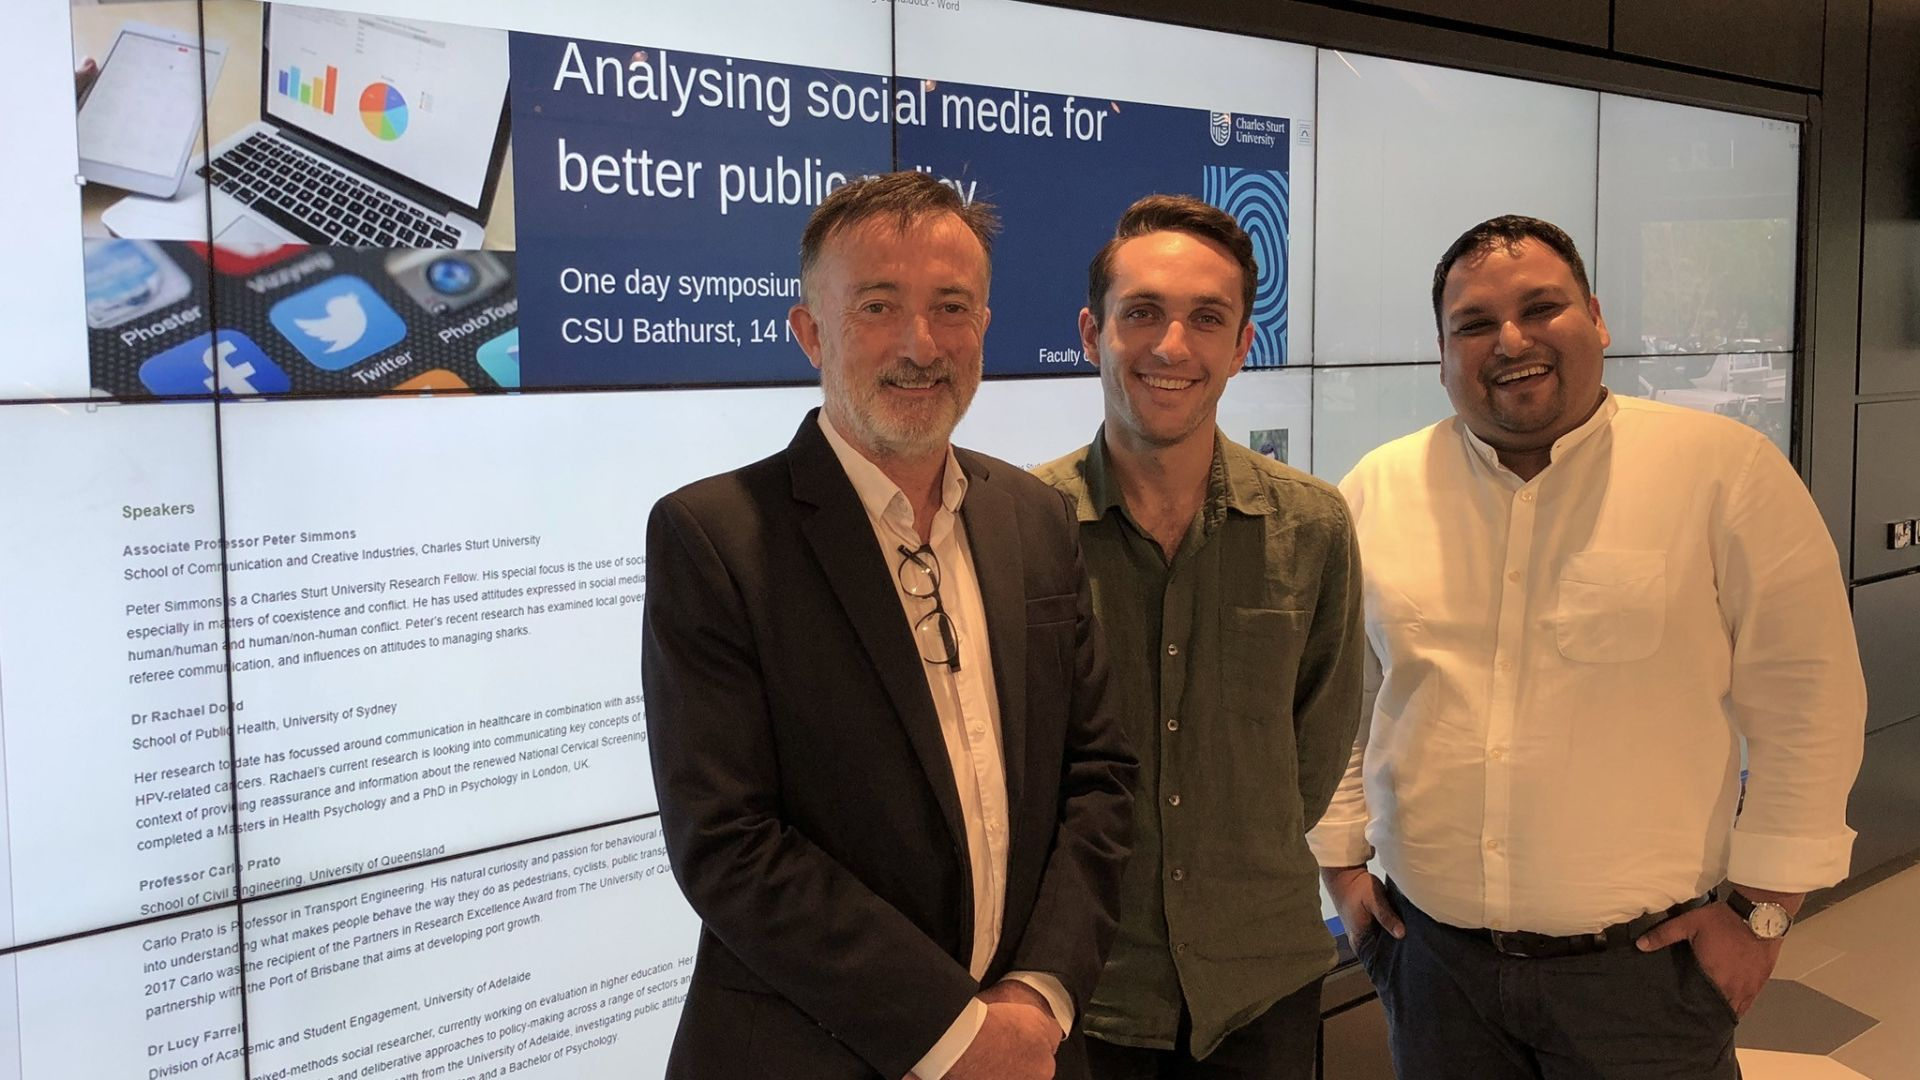 Forum to explore social media's potential uses in public policy